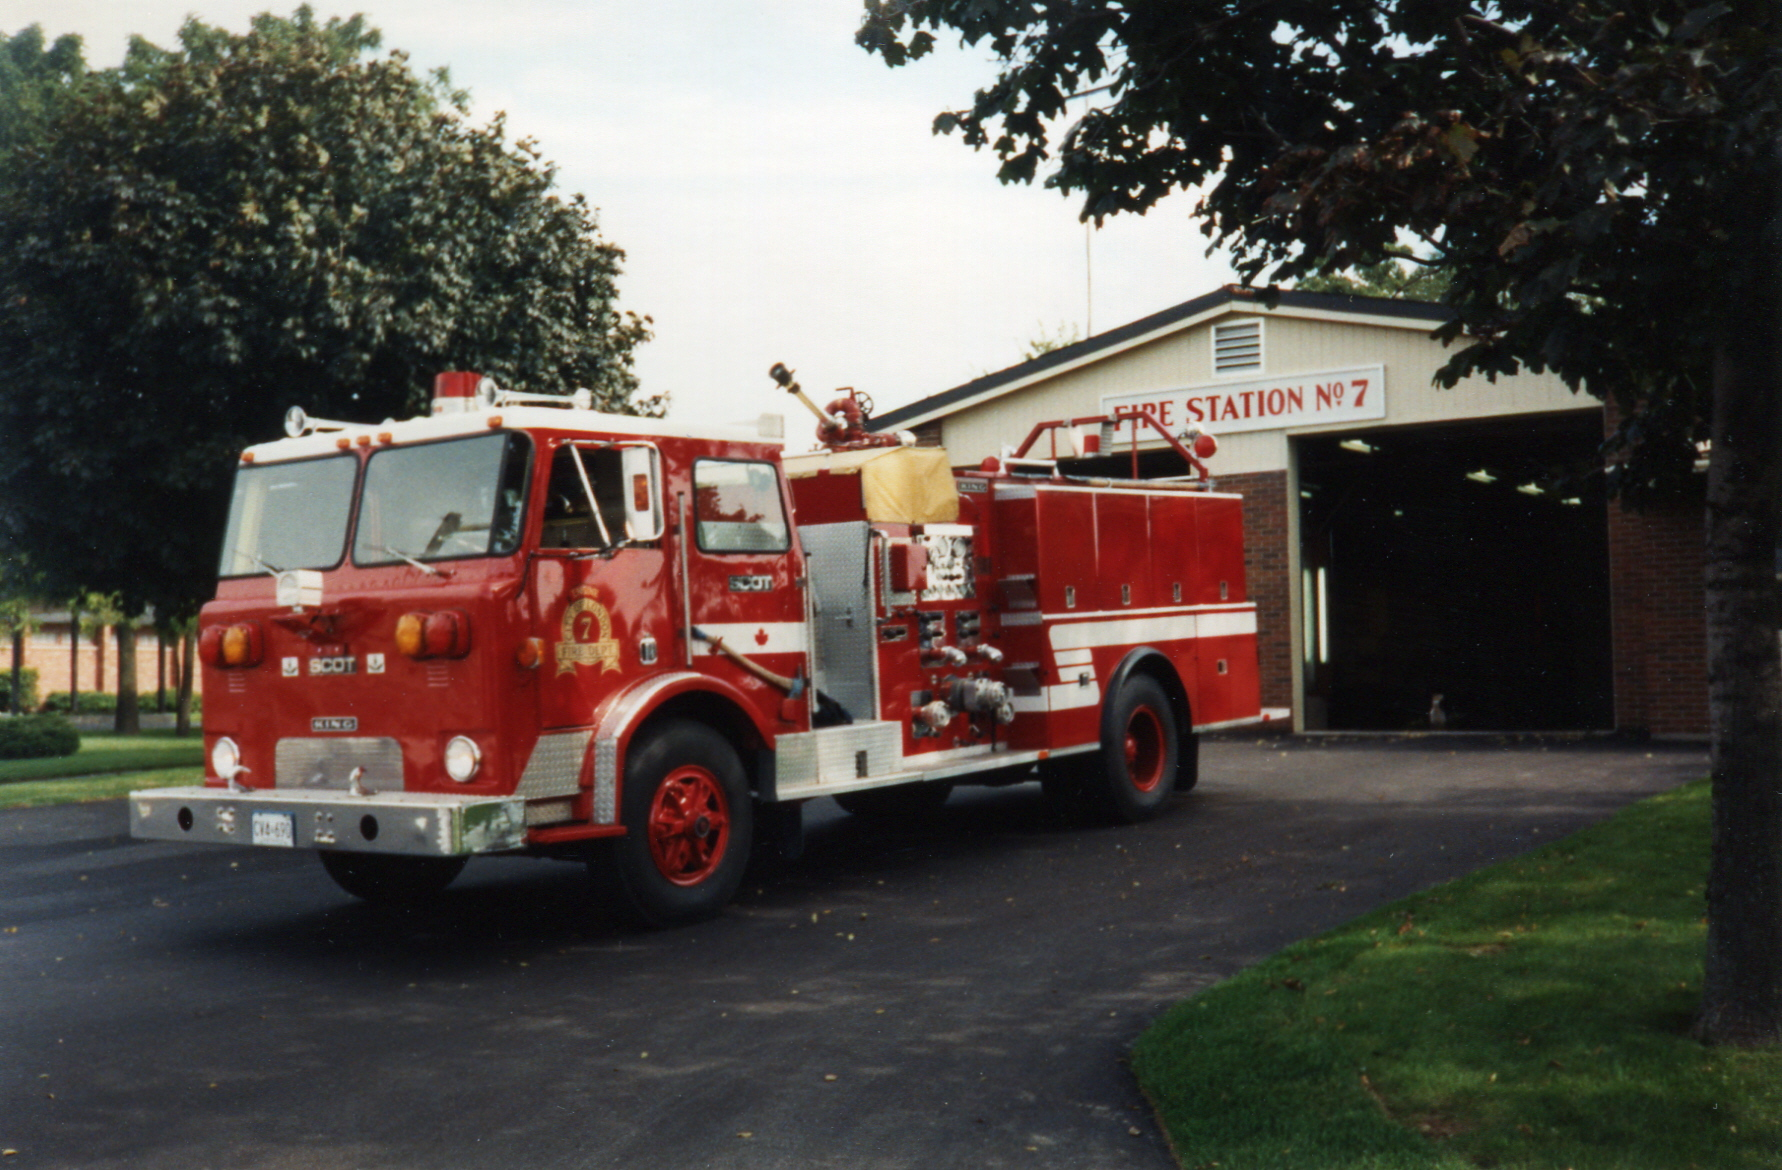 Engine 7 with new paint